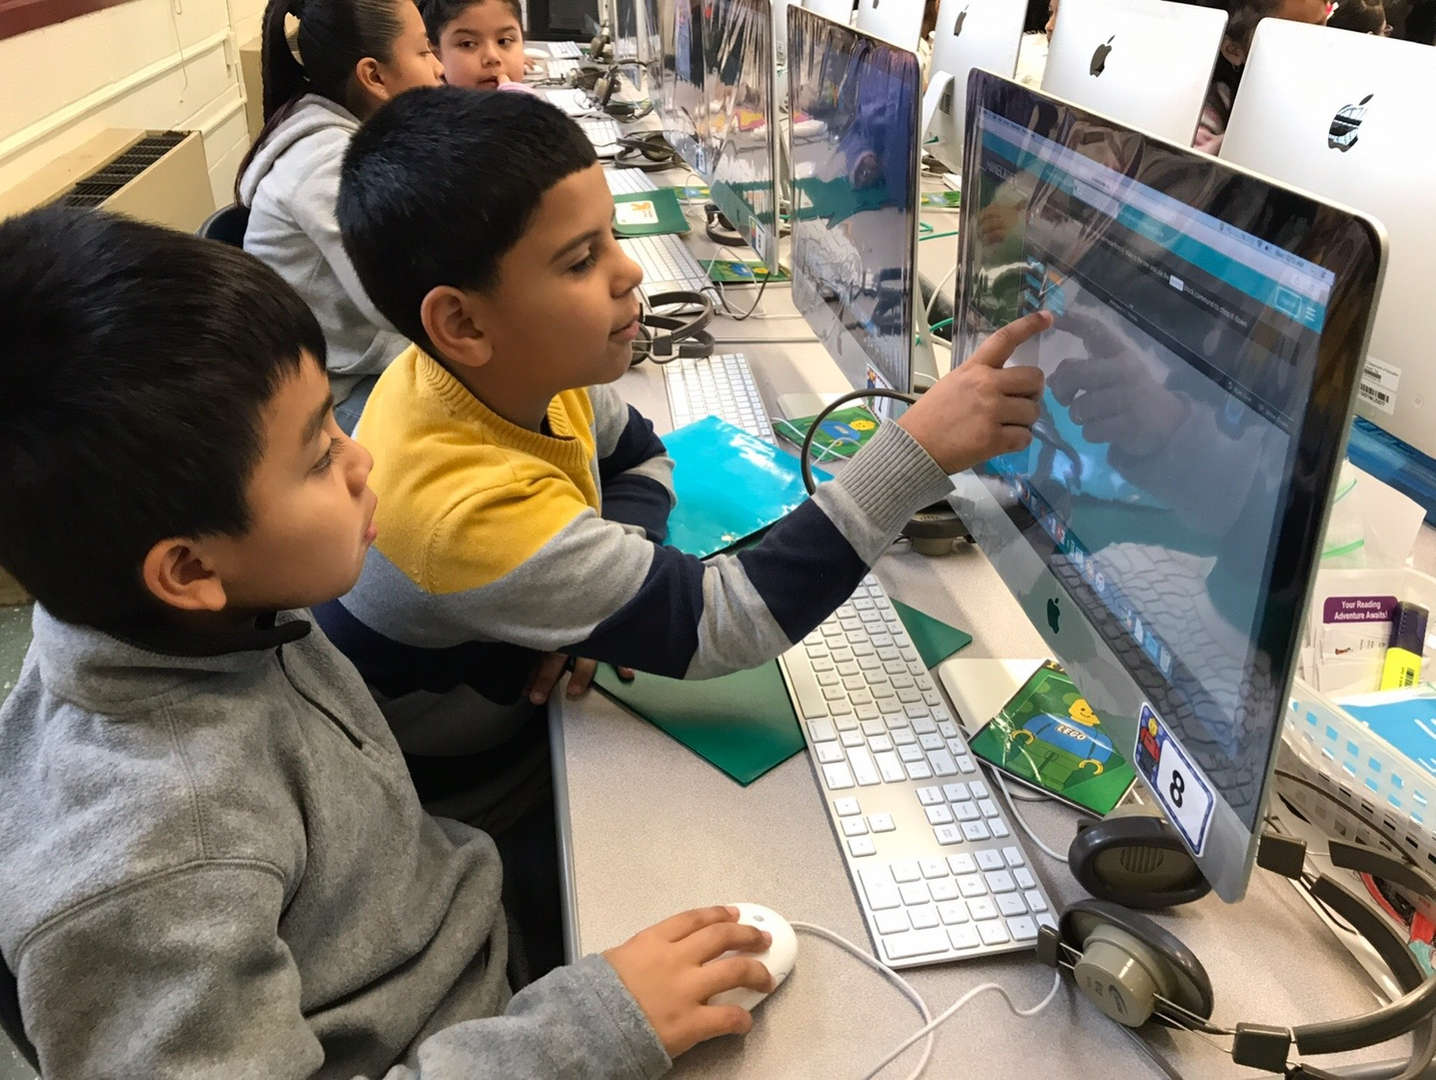 one boy showing and pointing on the computer screen to his classmate